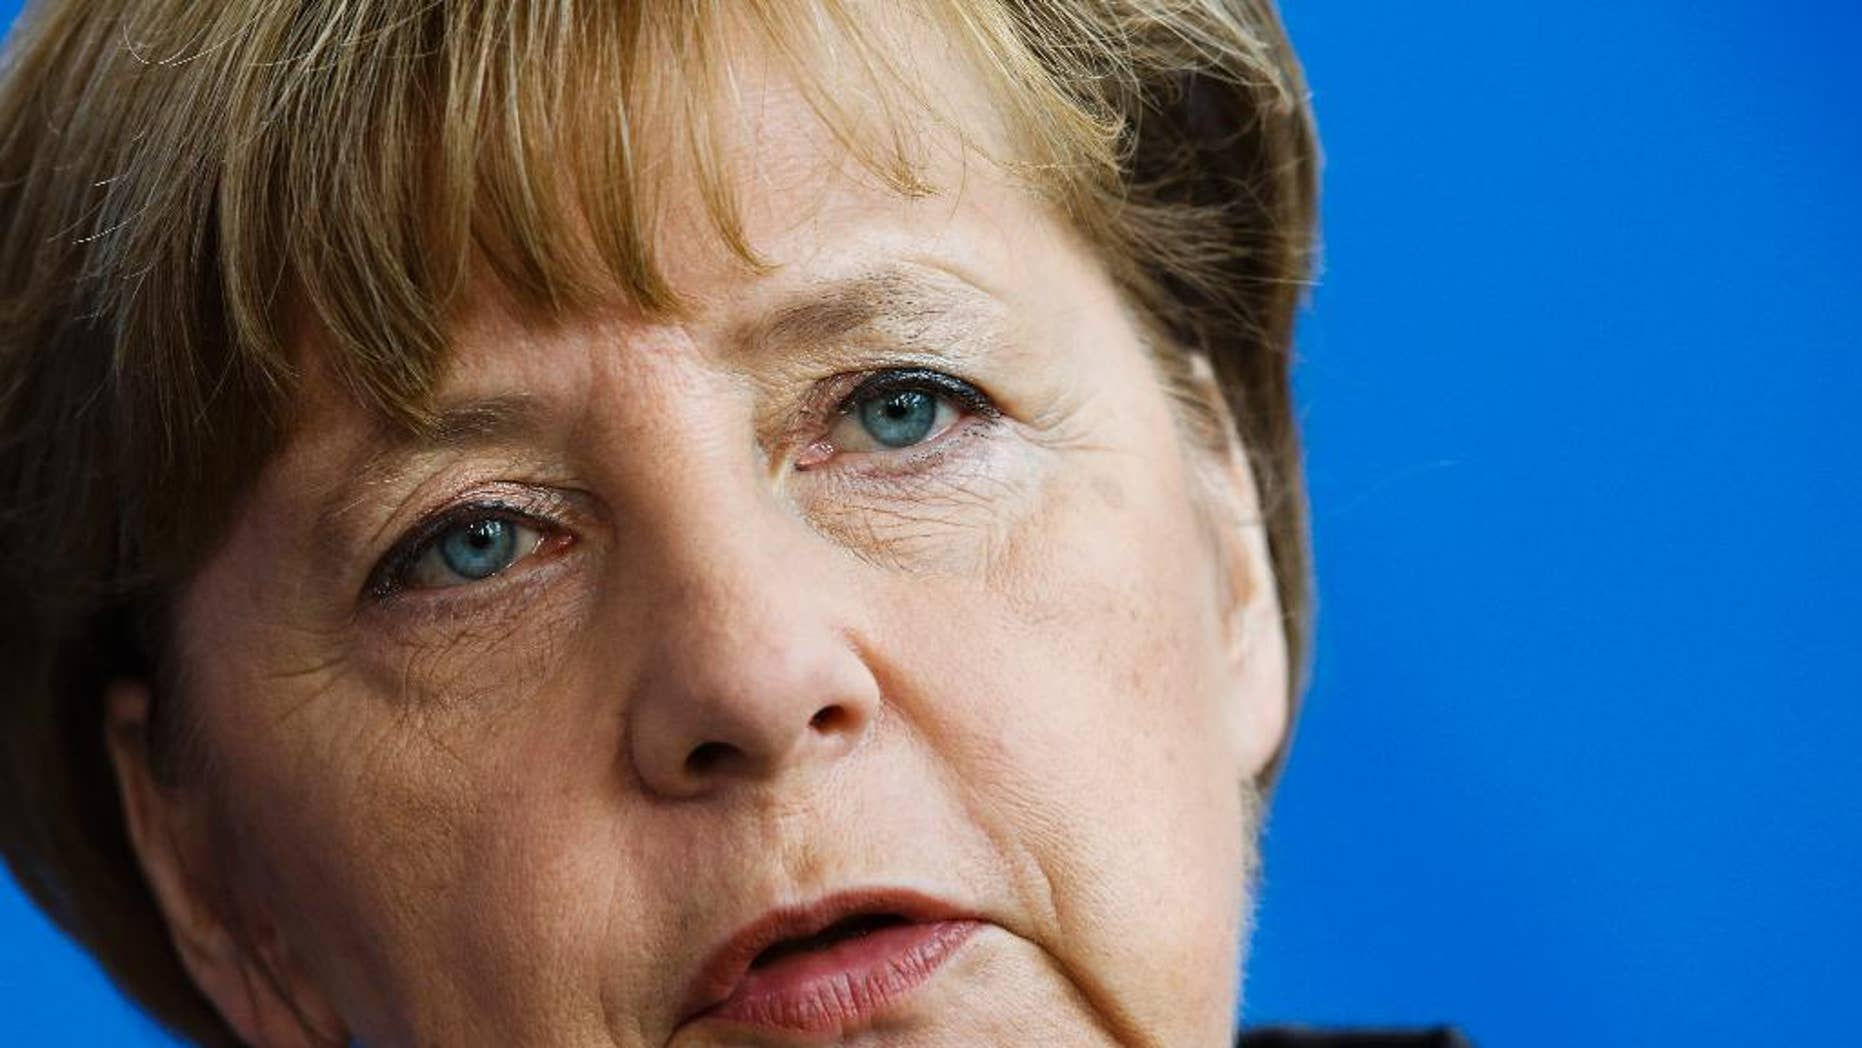 German Chancellor Angela Merkel attends a news conference with the Prime Minister of Sweden Stefan Lofven after a meeting at the chancellery in Berlin, Germany, Wednesday, Feb. 25, 2015.  (AP Photo/Markus Schreiber)